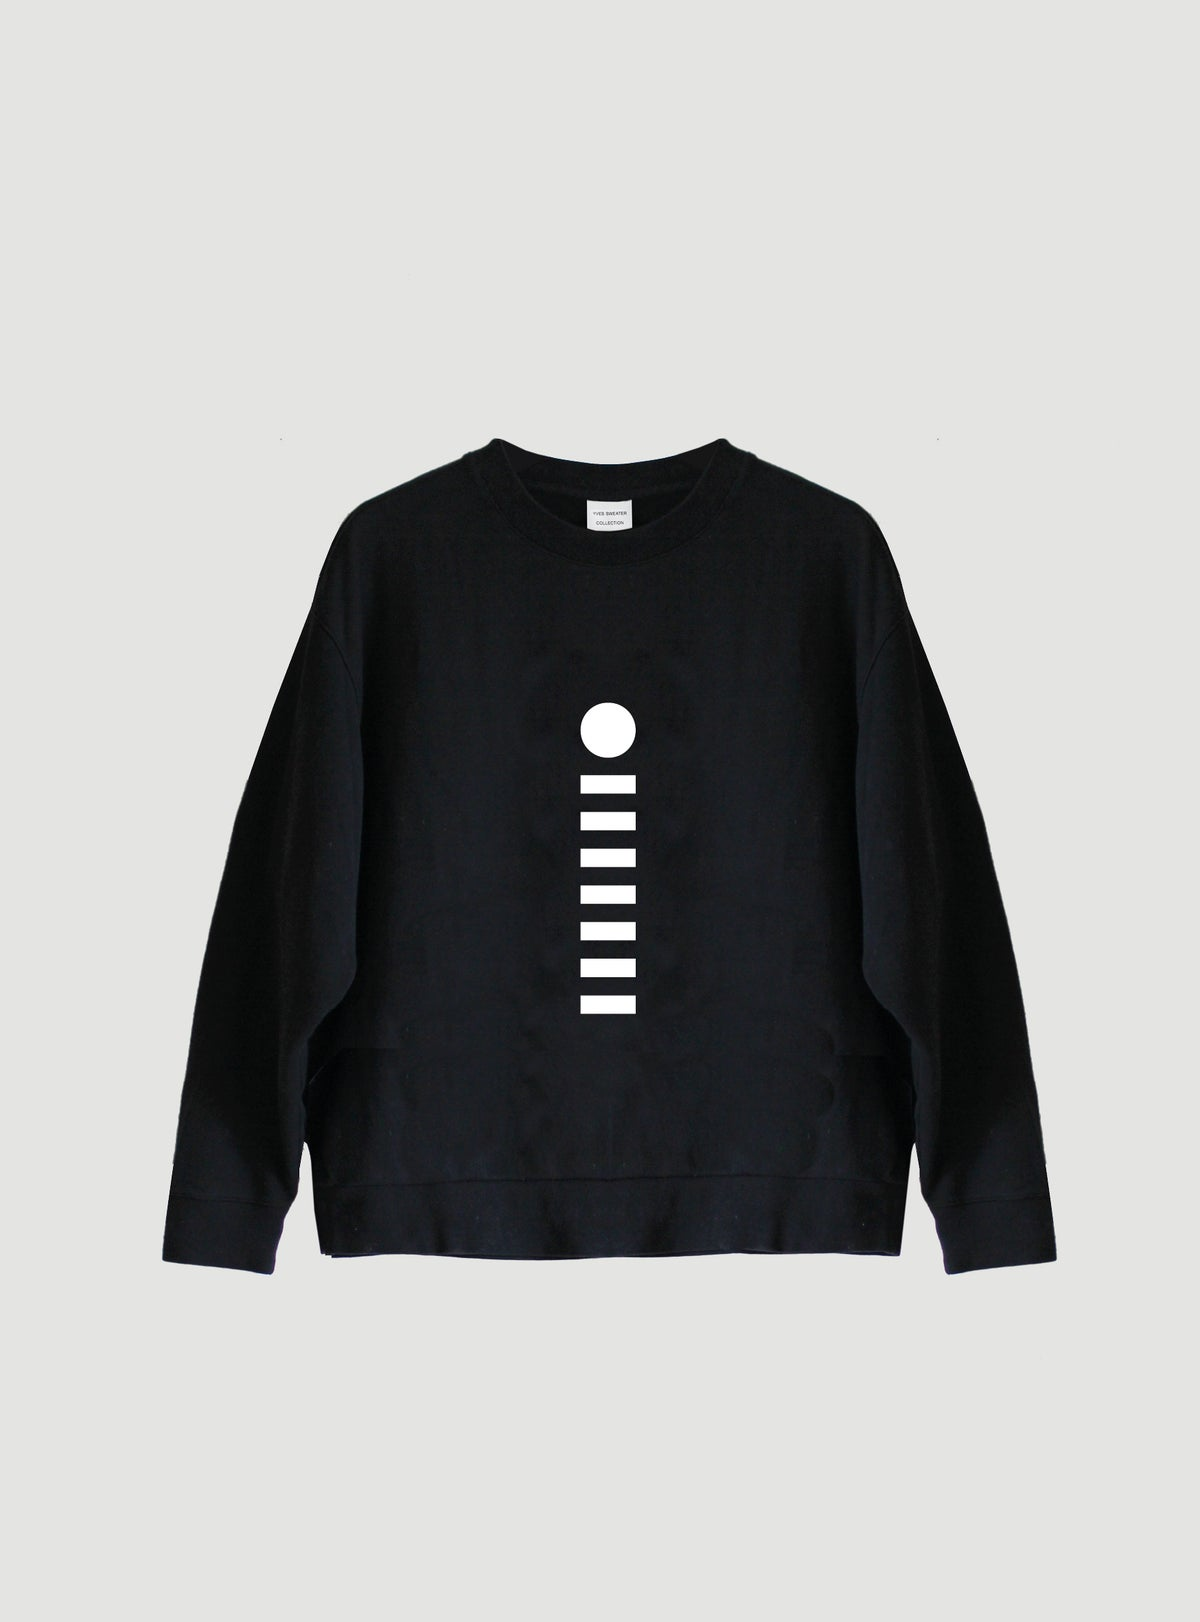 Image of i Sweater